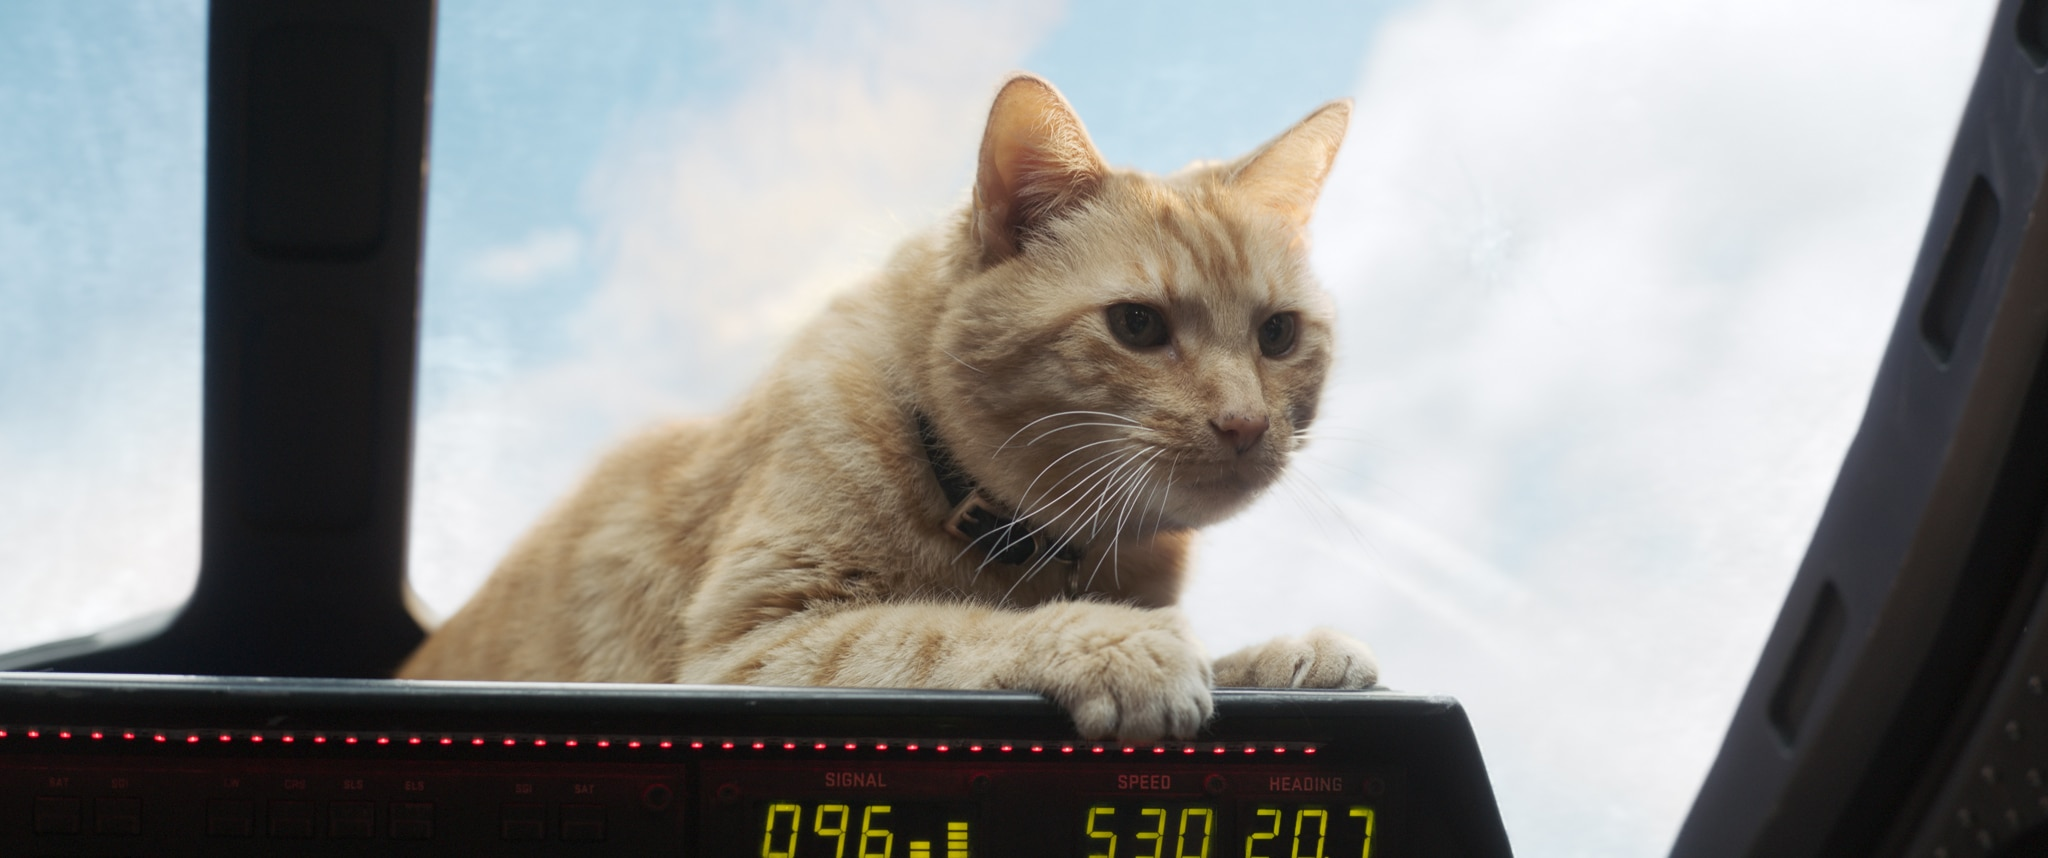 Captain Marvel Review, Goose The Cat